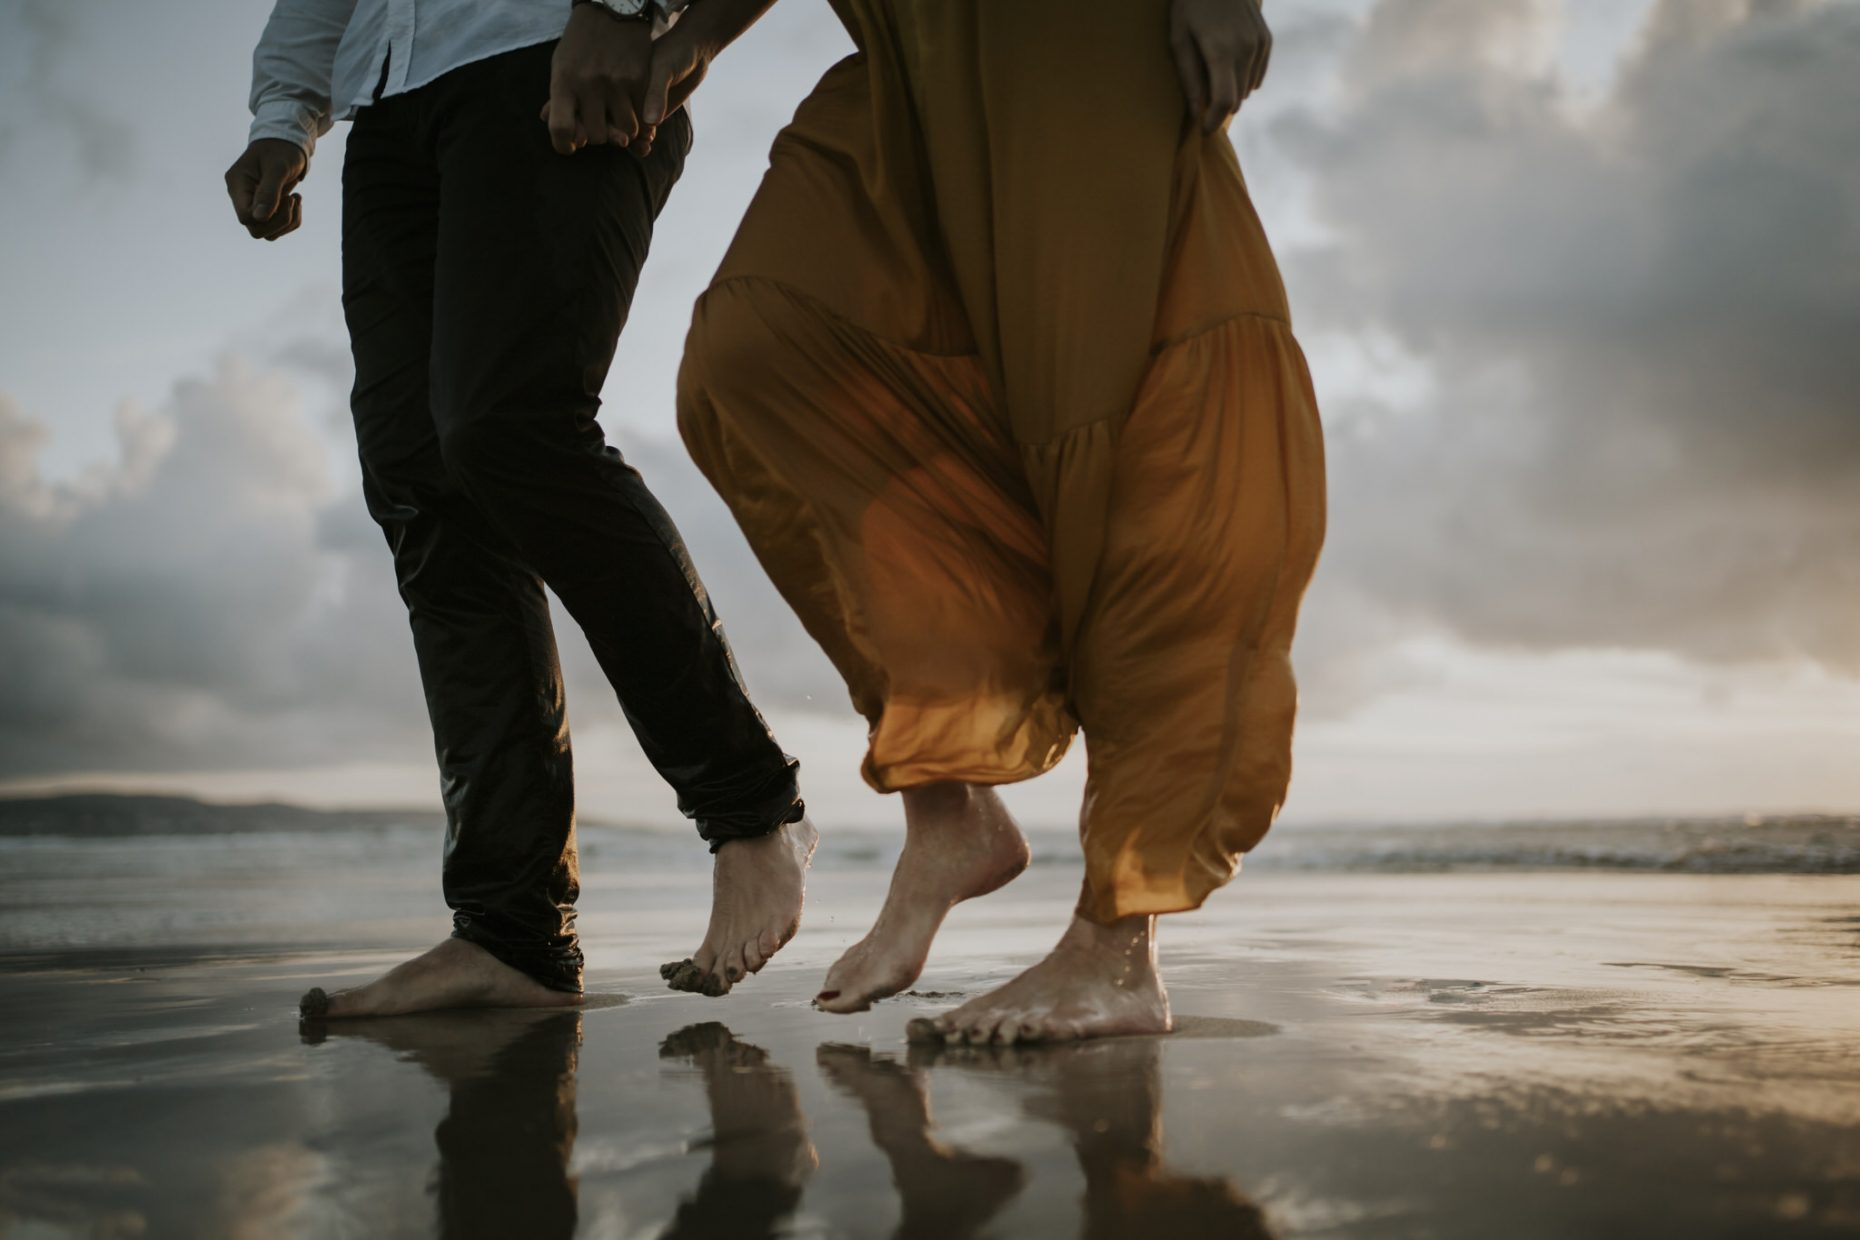 A couple on their elopement in cornwall with their photographer walking barefoot on the sandy beach